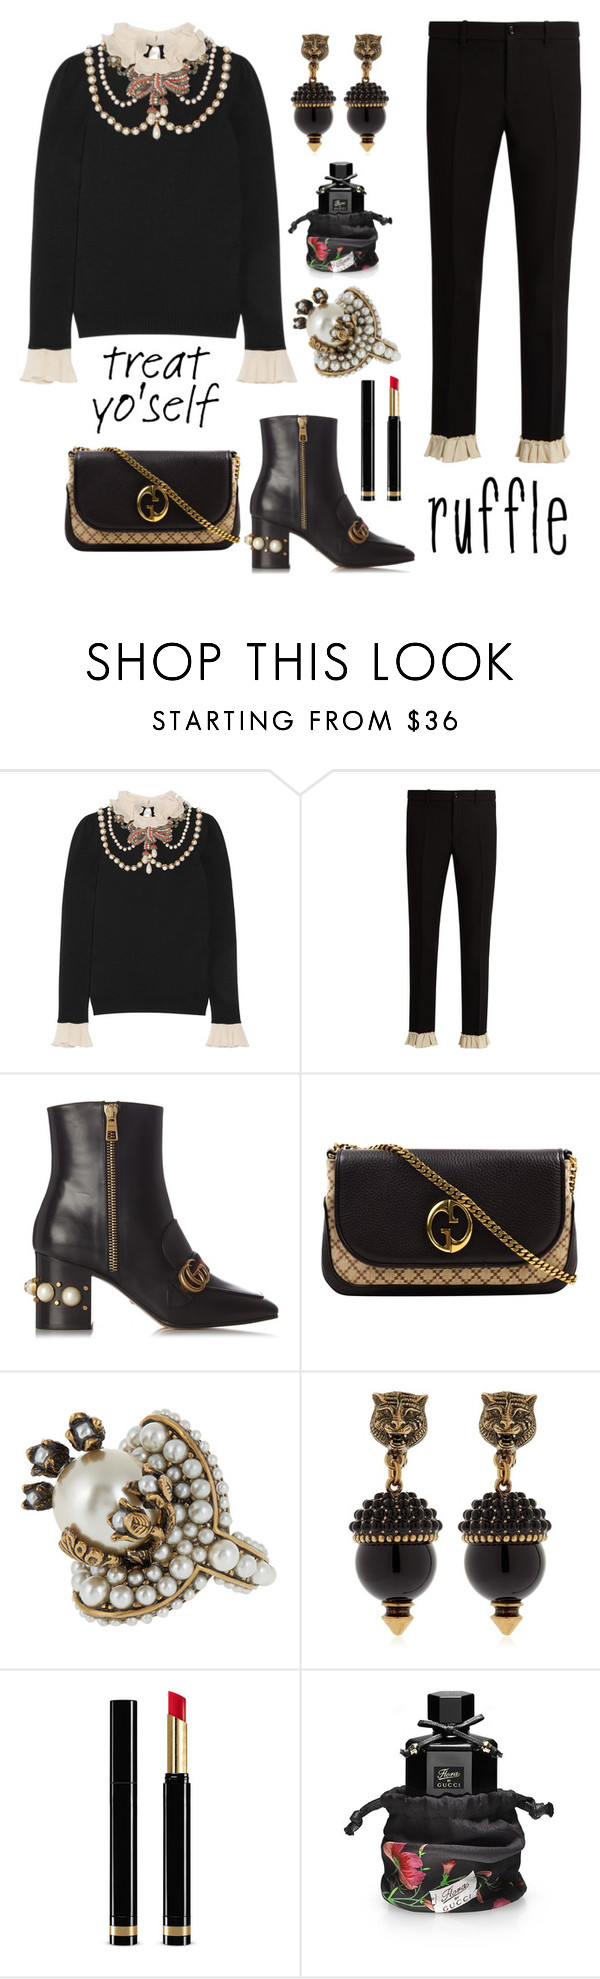 """Treat yo' self"" by nicolevalents ❤ liked on Polyvore featuring Gucci"